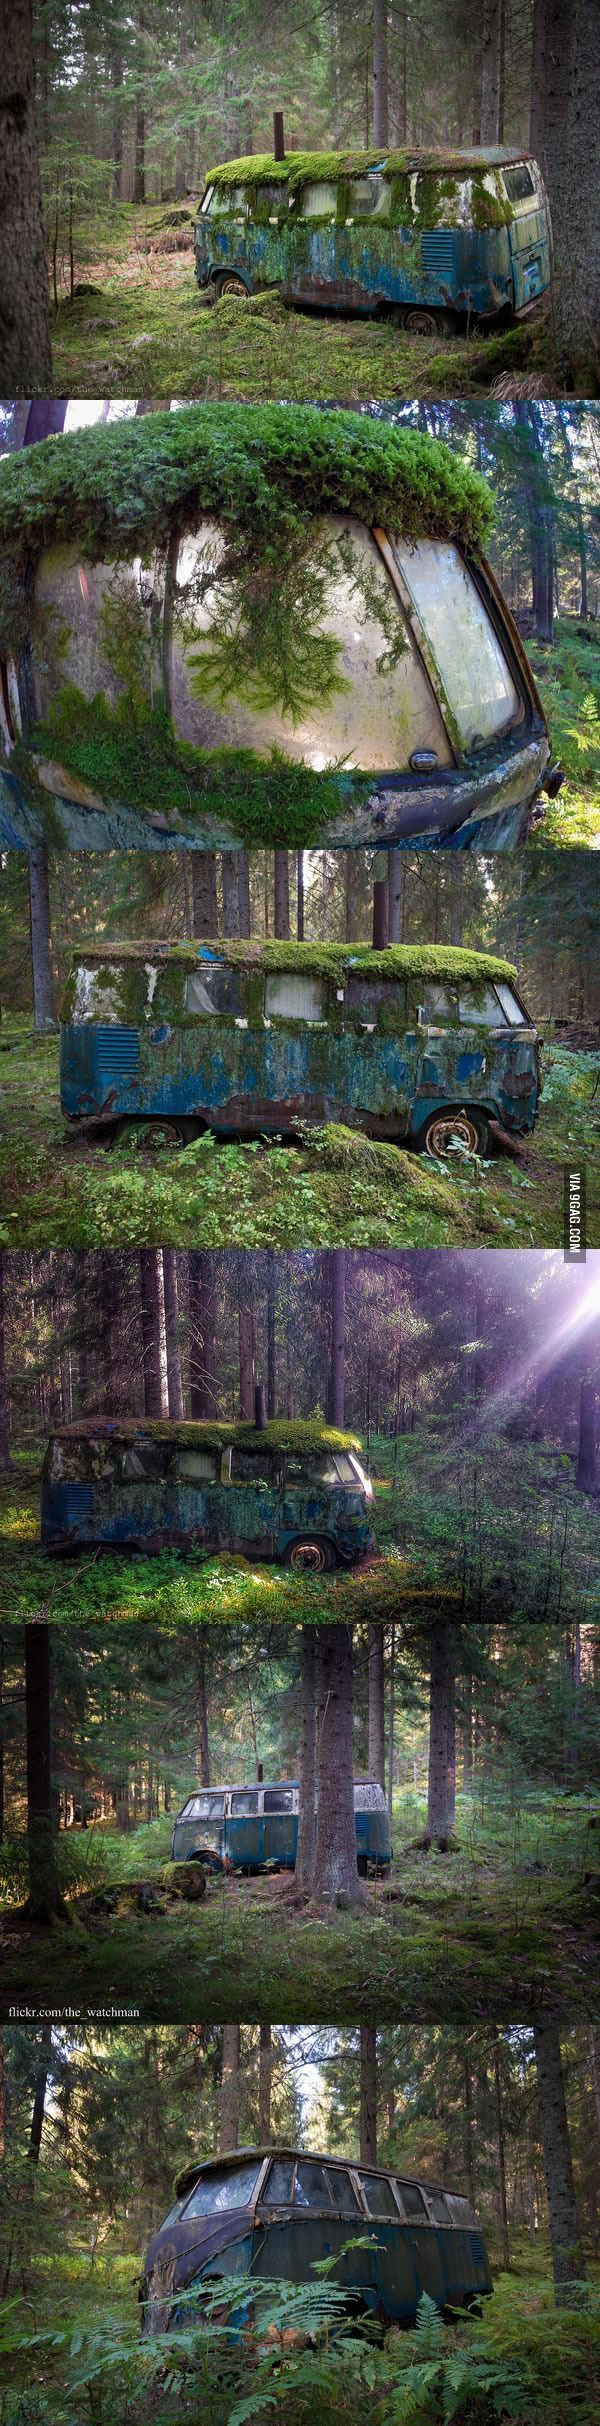 Oh no it's such a shame that something like this beautiful VW is left there to die